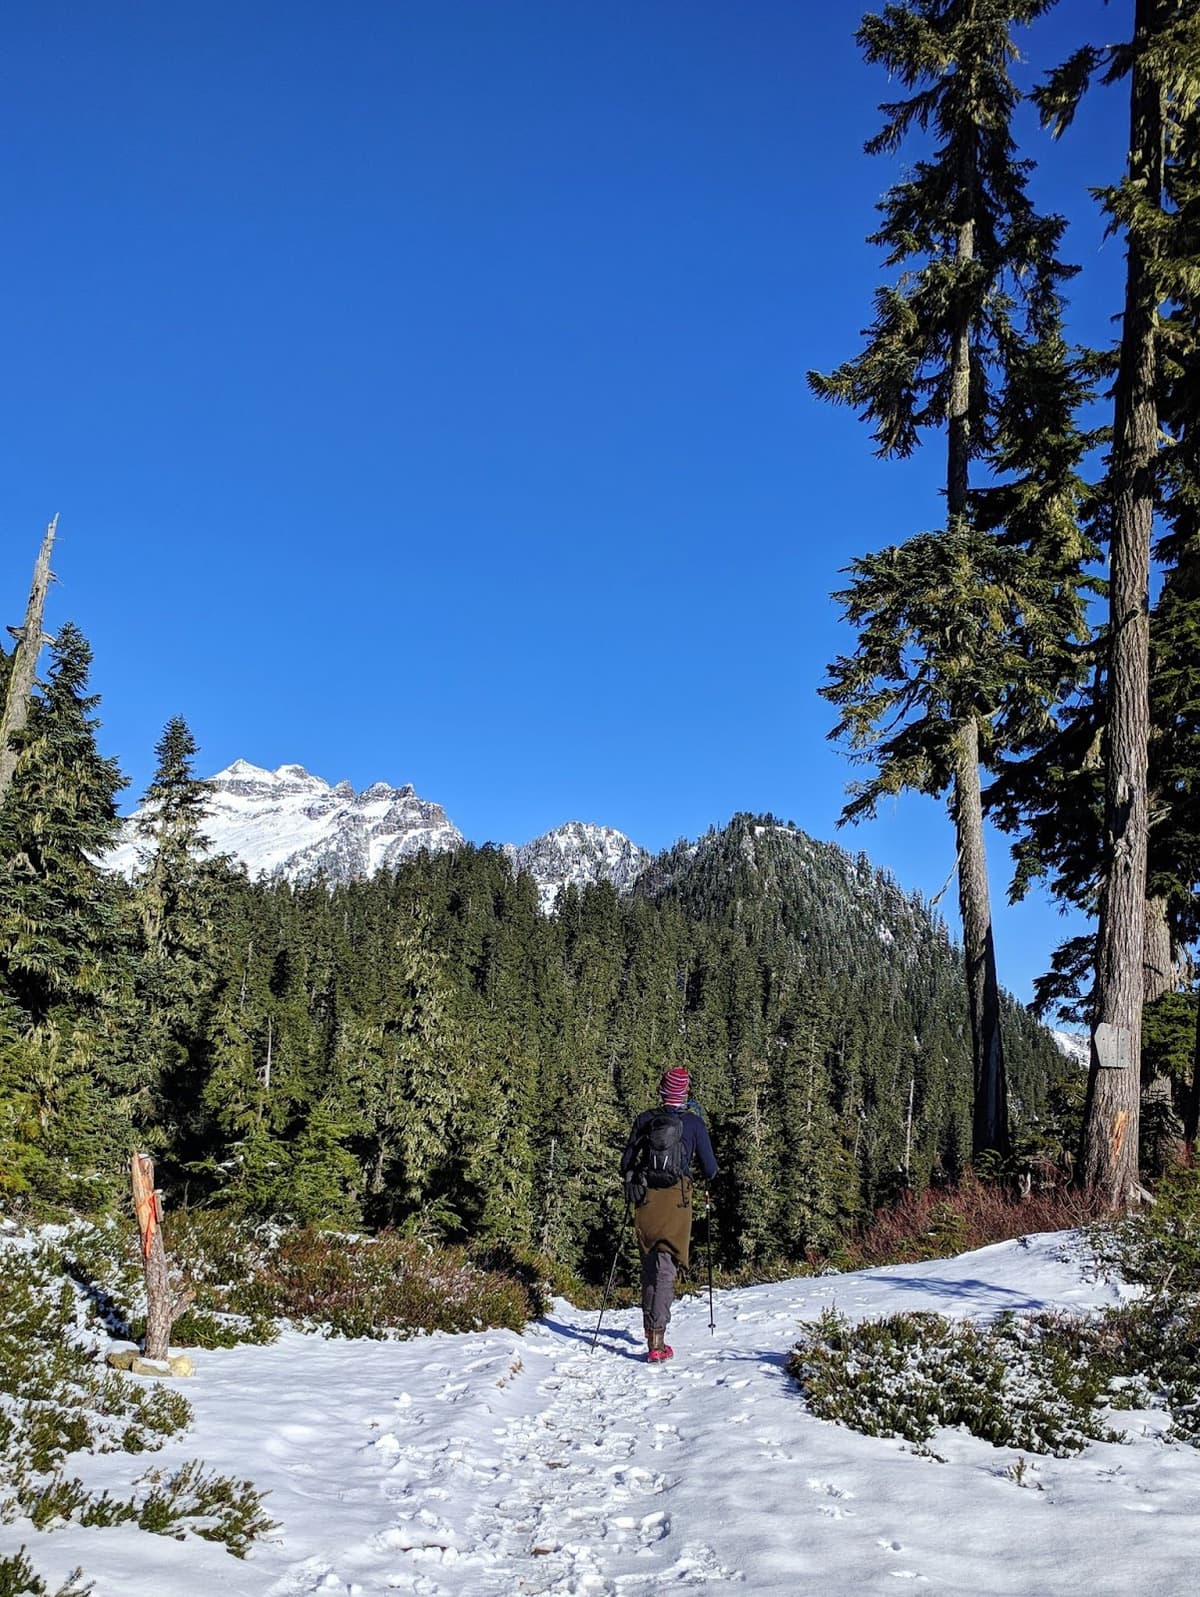 hiking through the snowy part of Blanca Lake with evergreen trees and glaciers in the distance